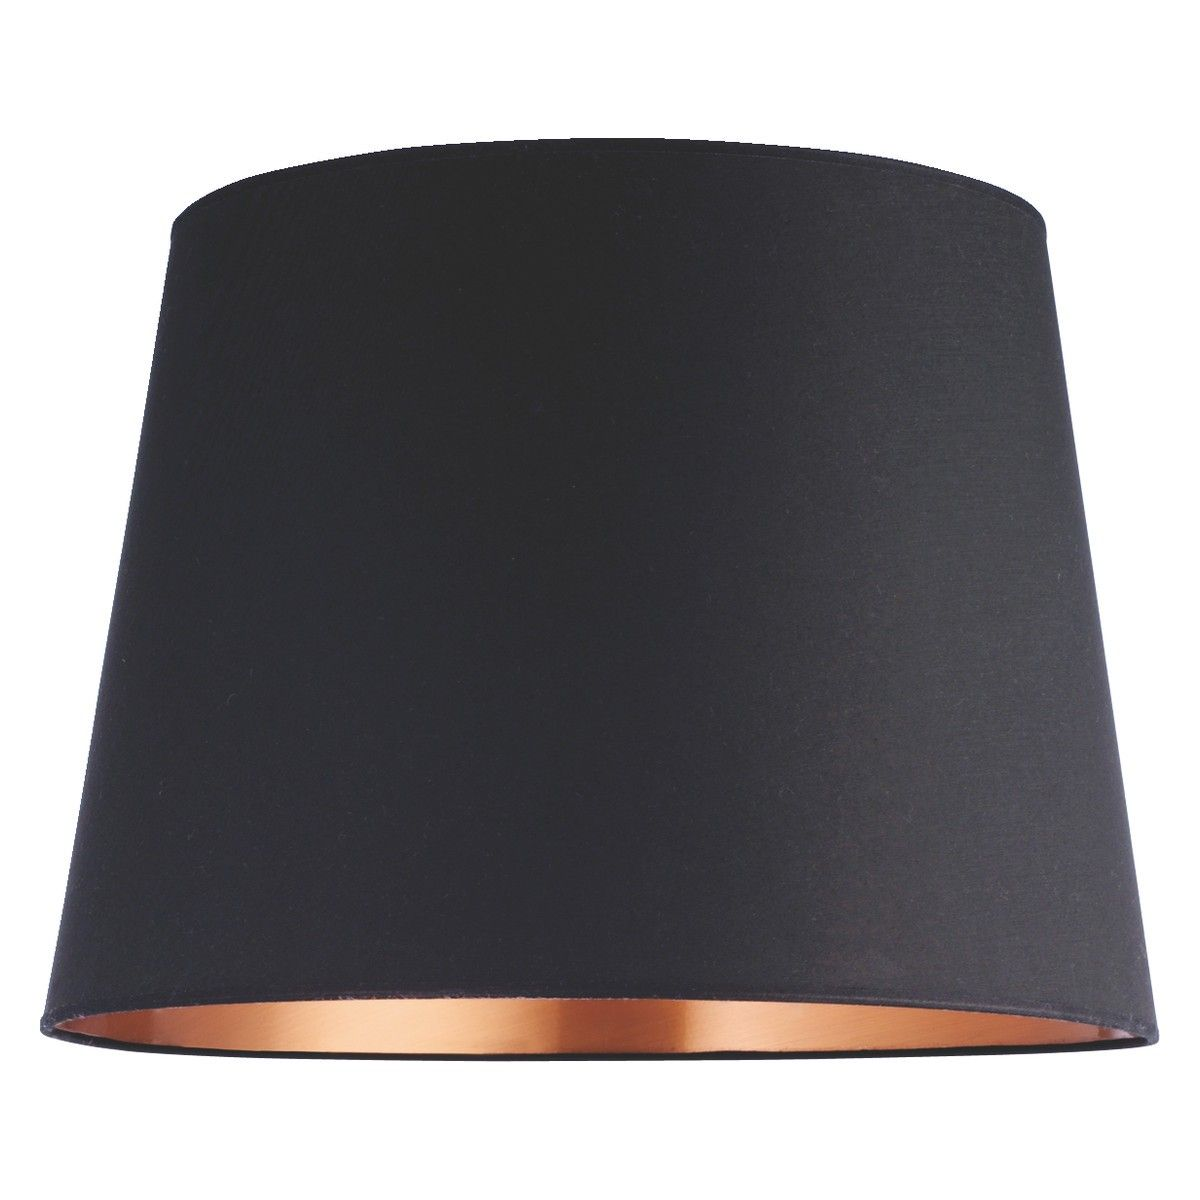 Grande Black Copper Large Tapered Lampshade D51 X H36cm Extra Large Lamp Shades Large Lamp Shade Lamp